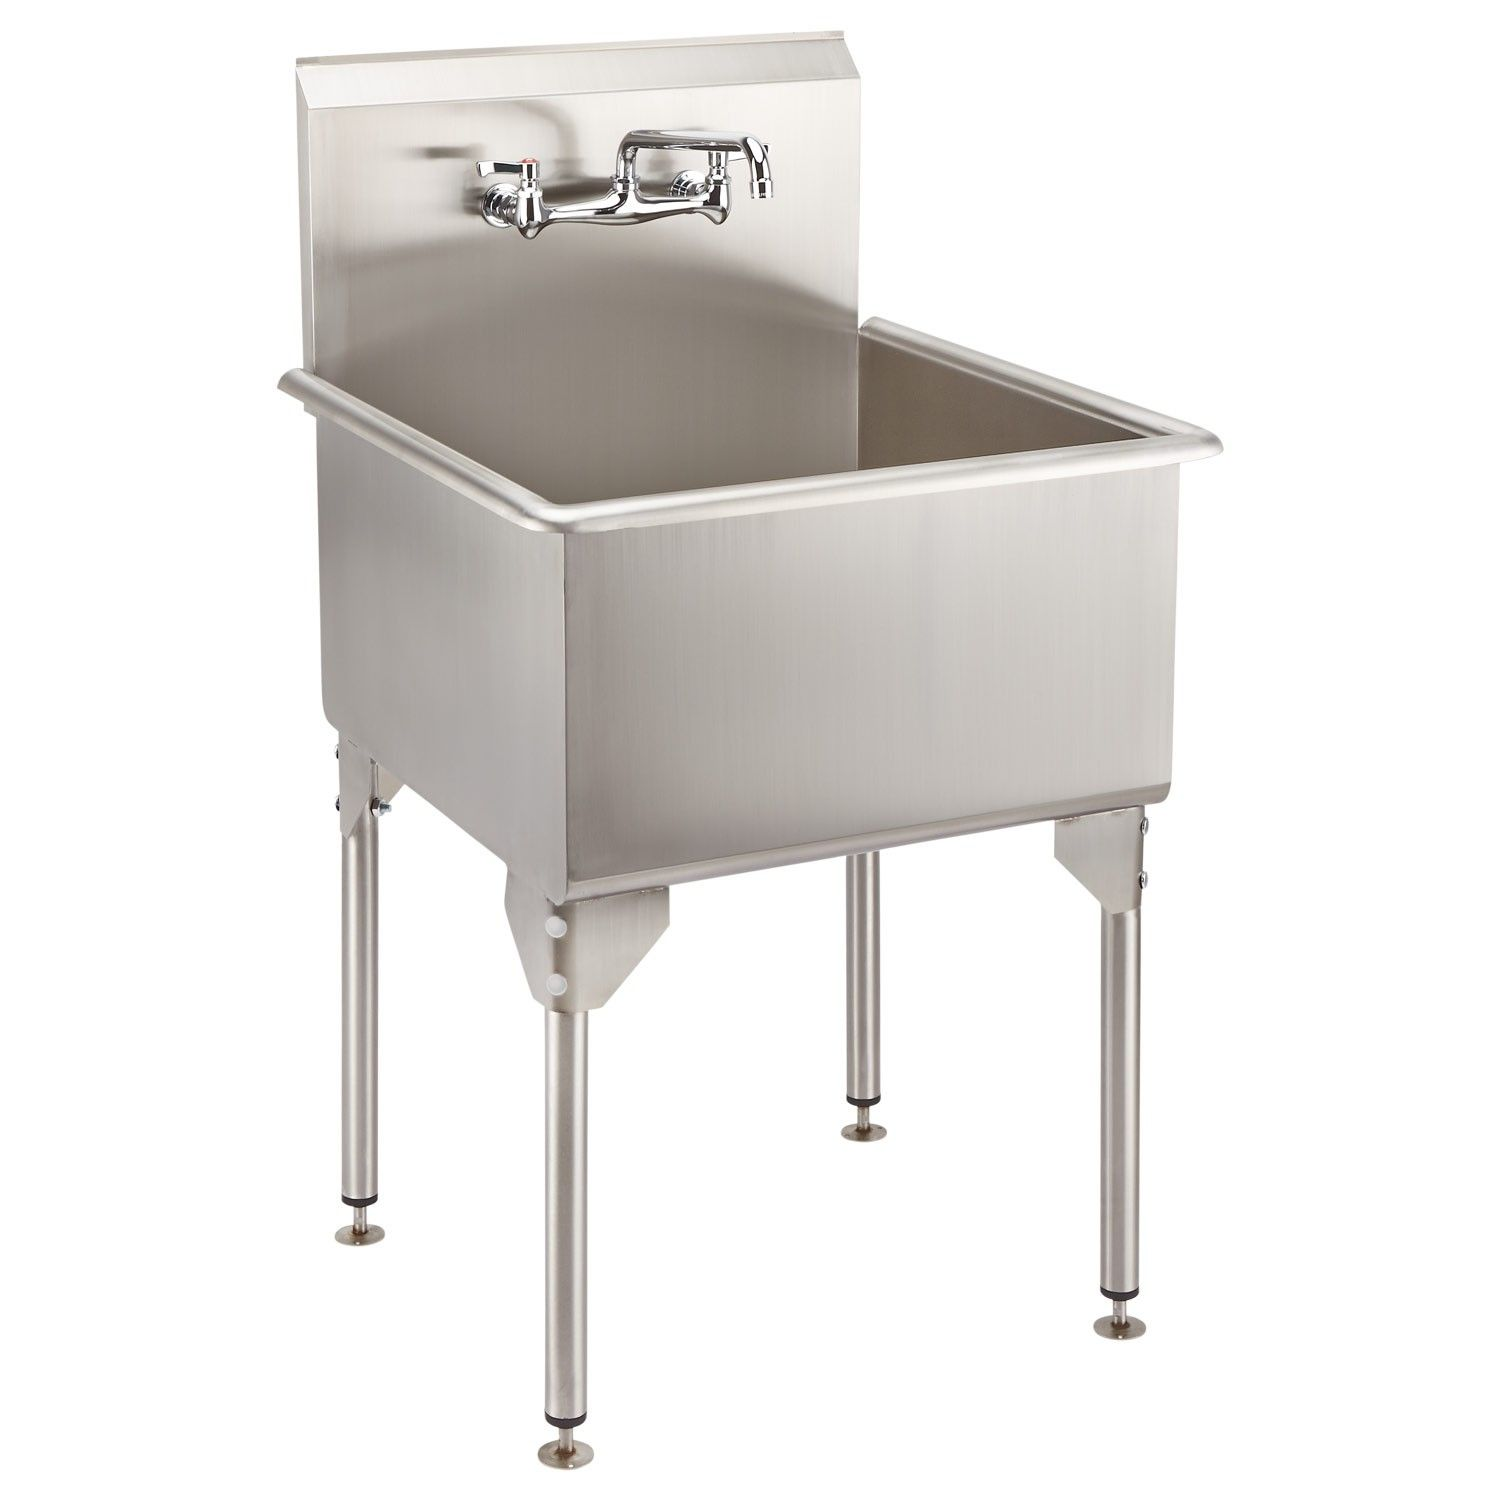 27 Stainless Steel Utility Sink  Utility sink Sinks and